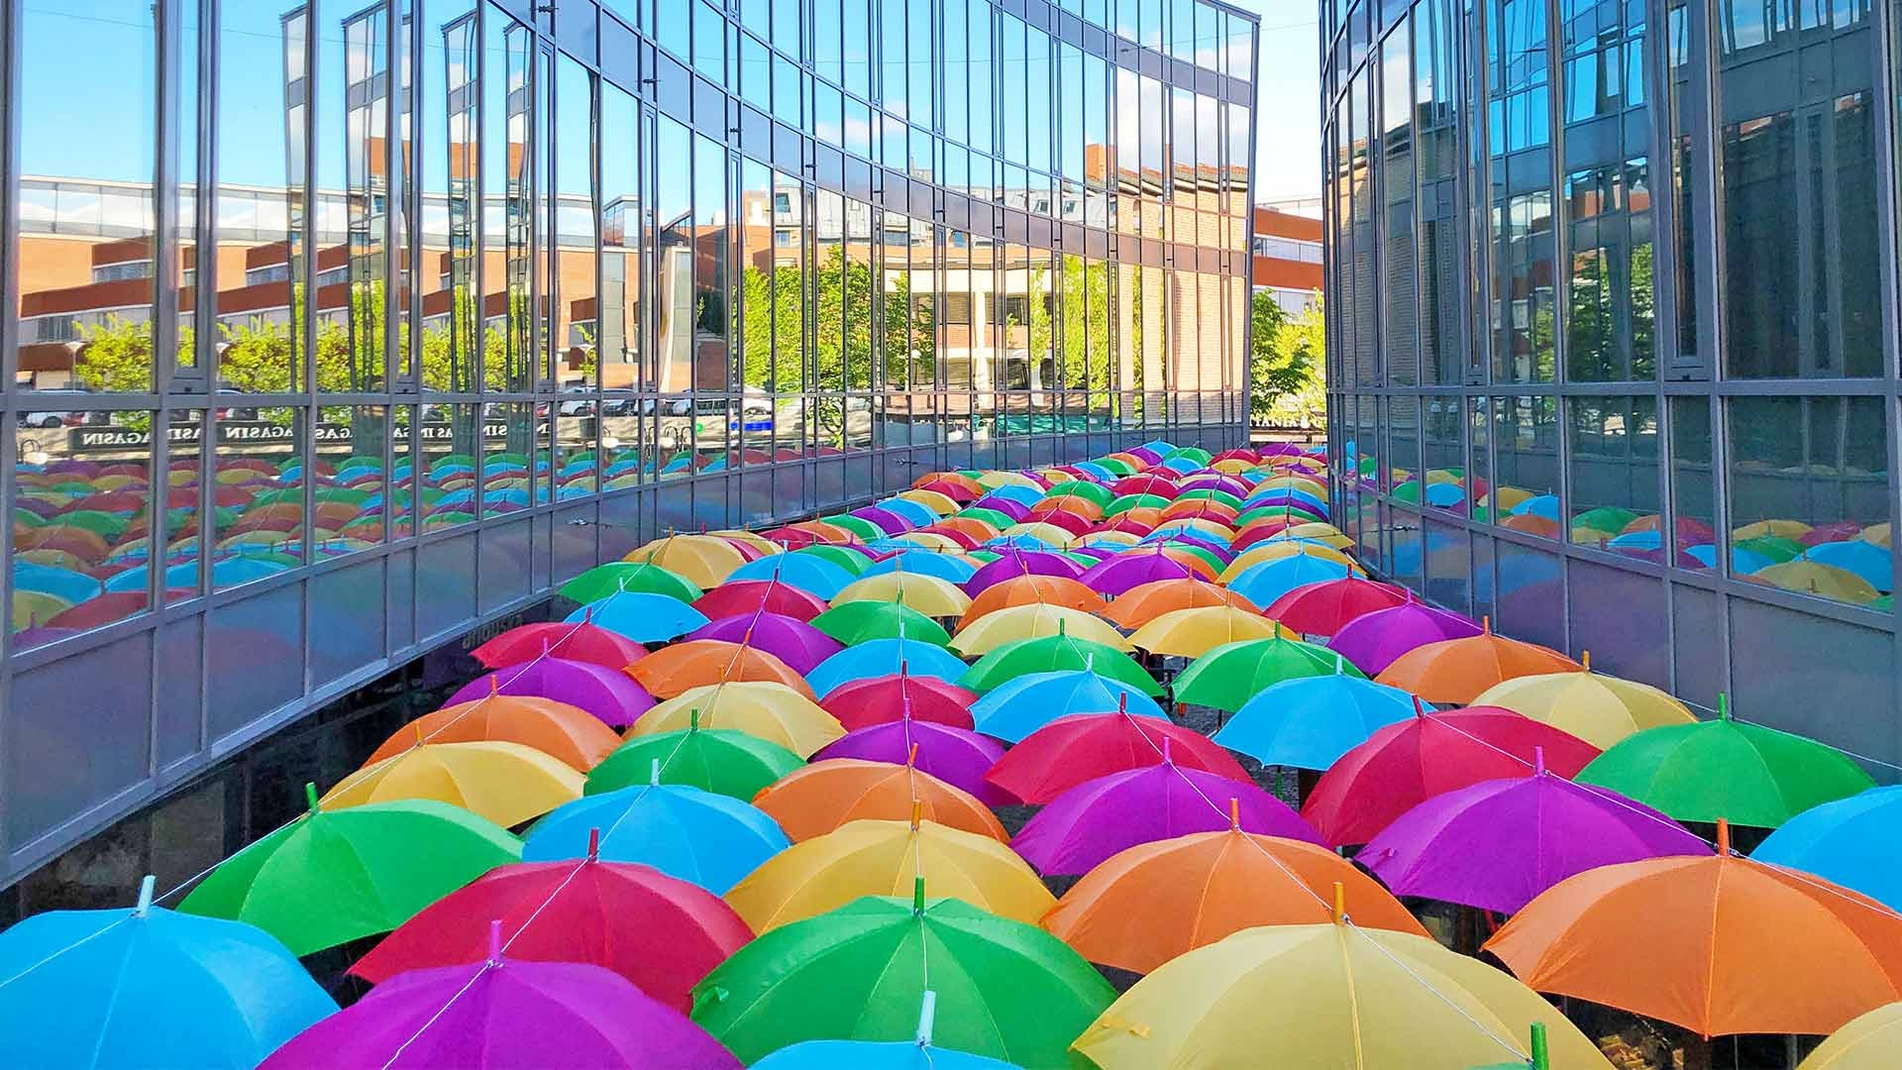 Umbrella Sky Project - Asker'19